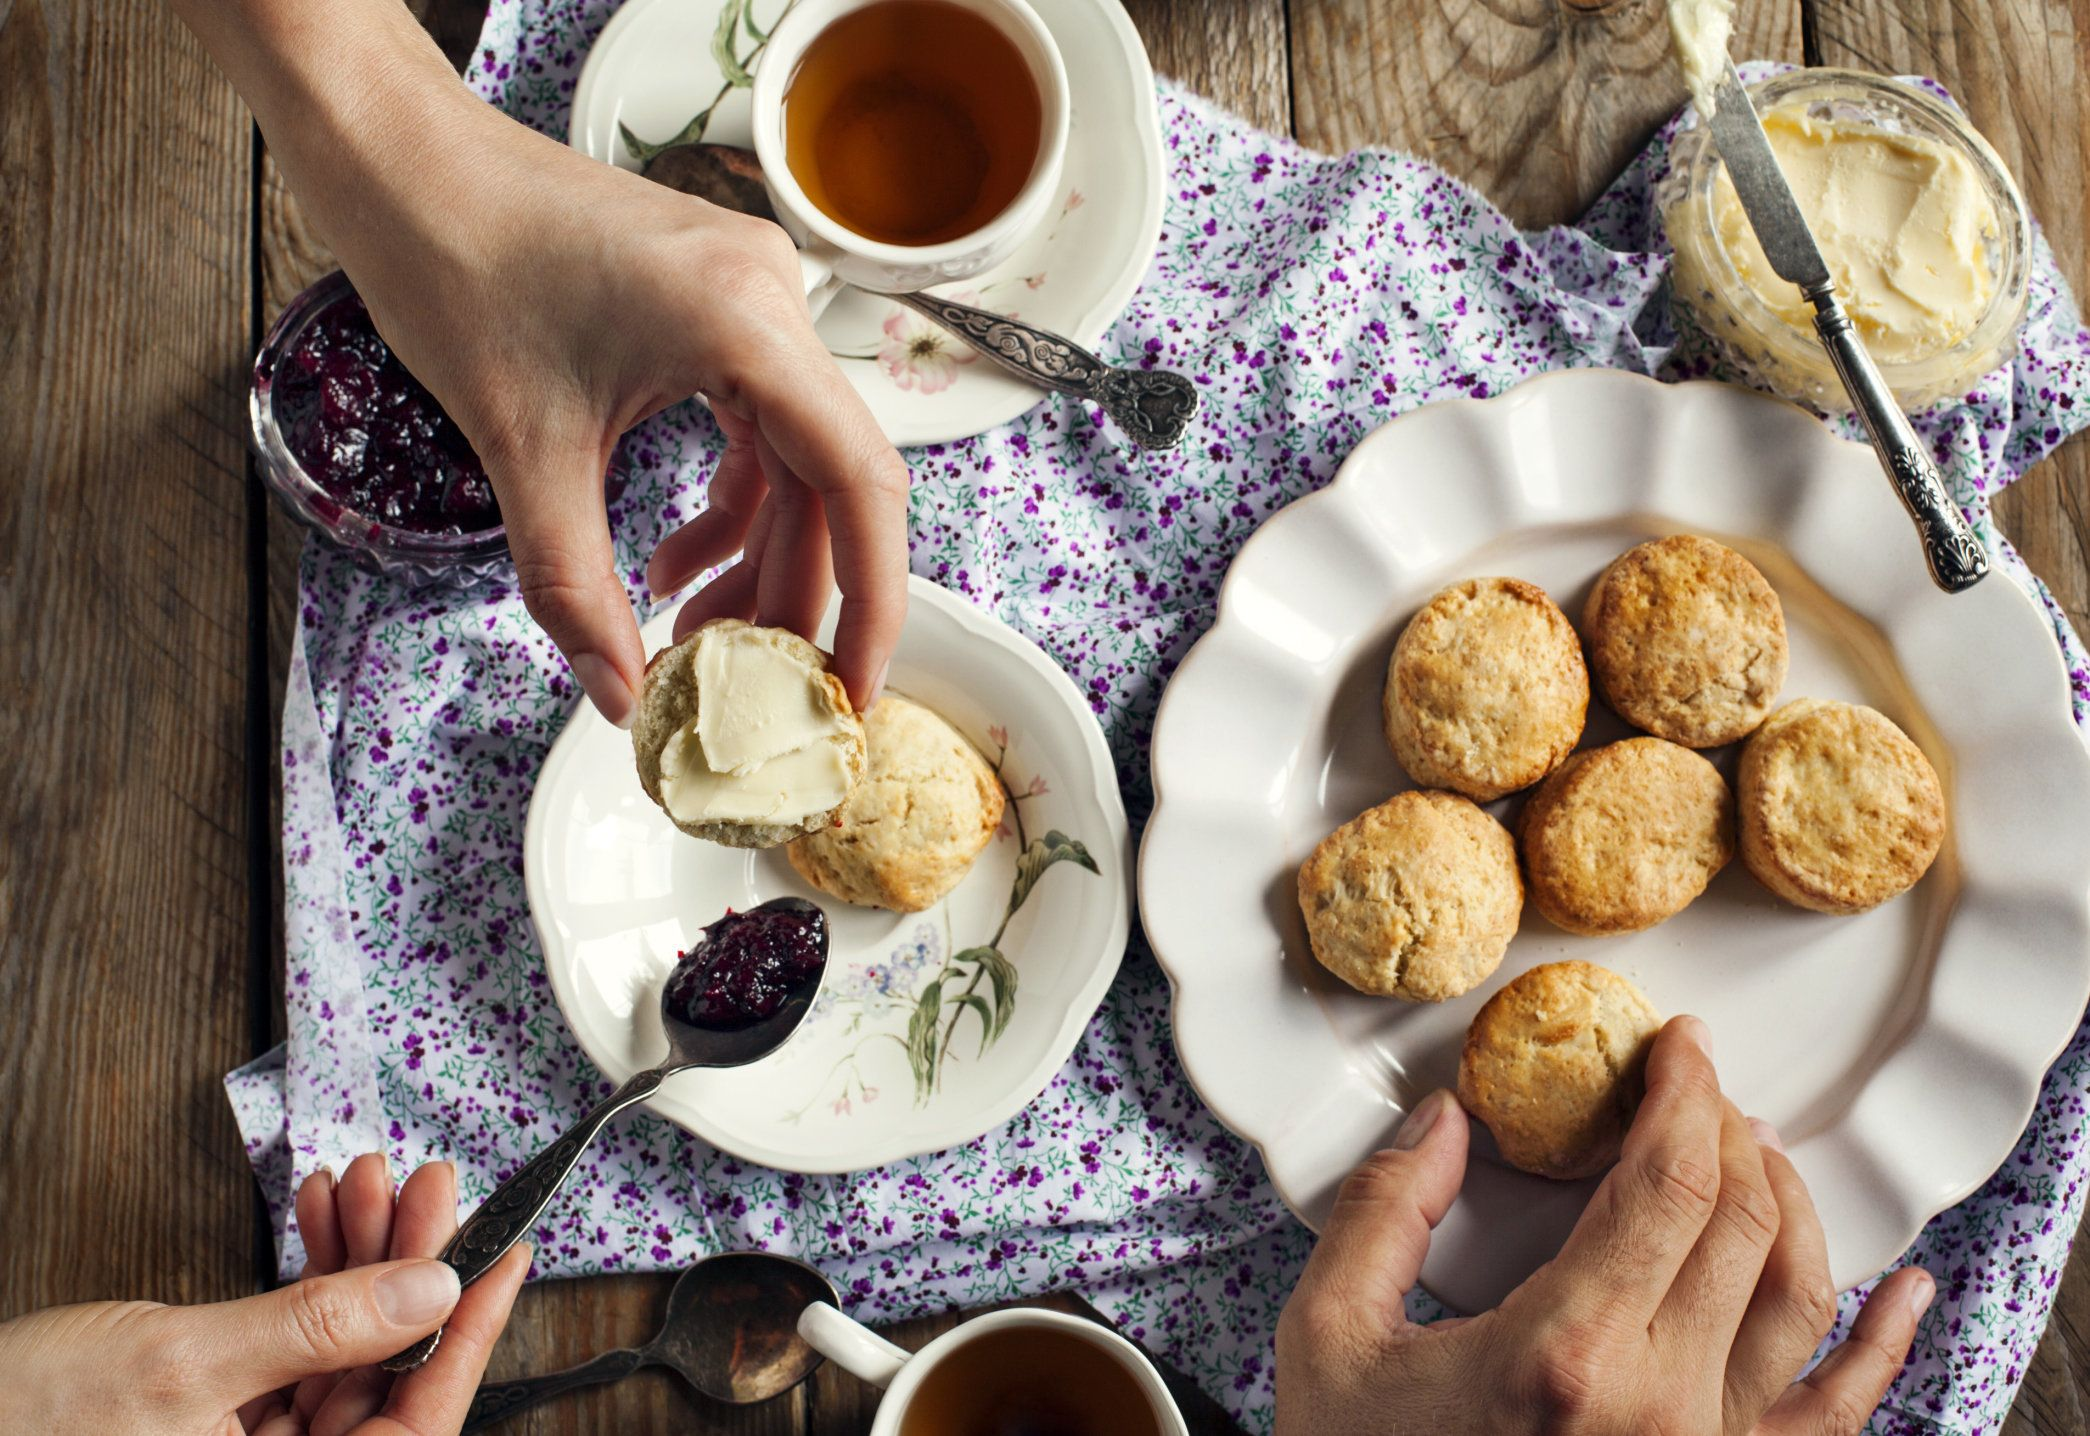 5 Reasons Every American Should Have Tea